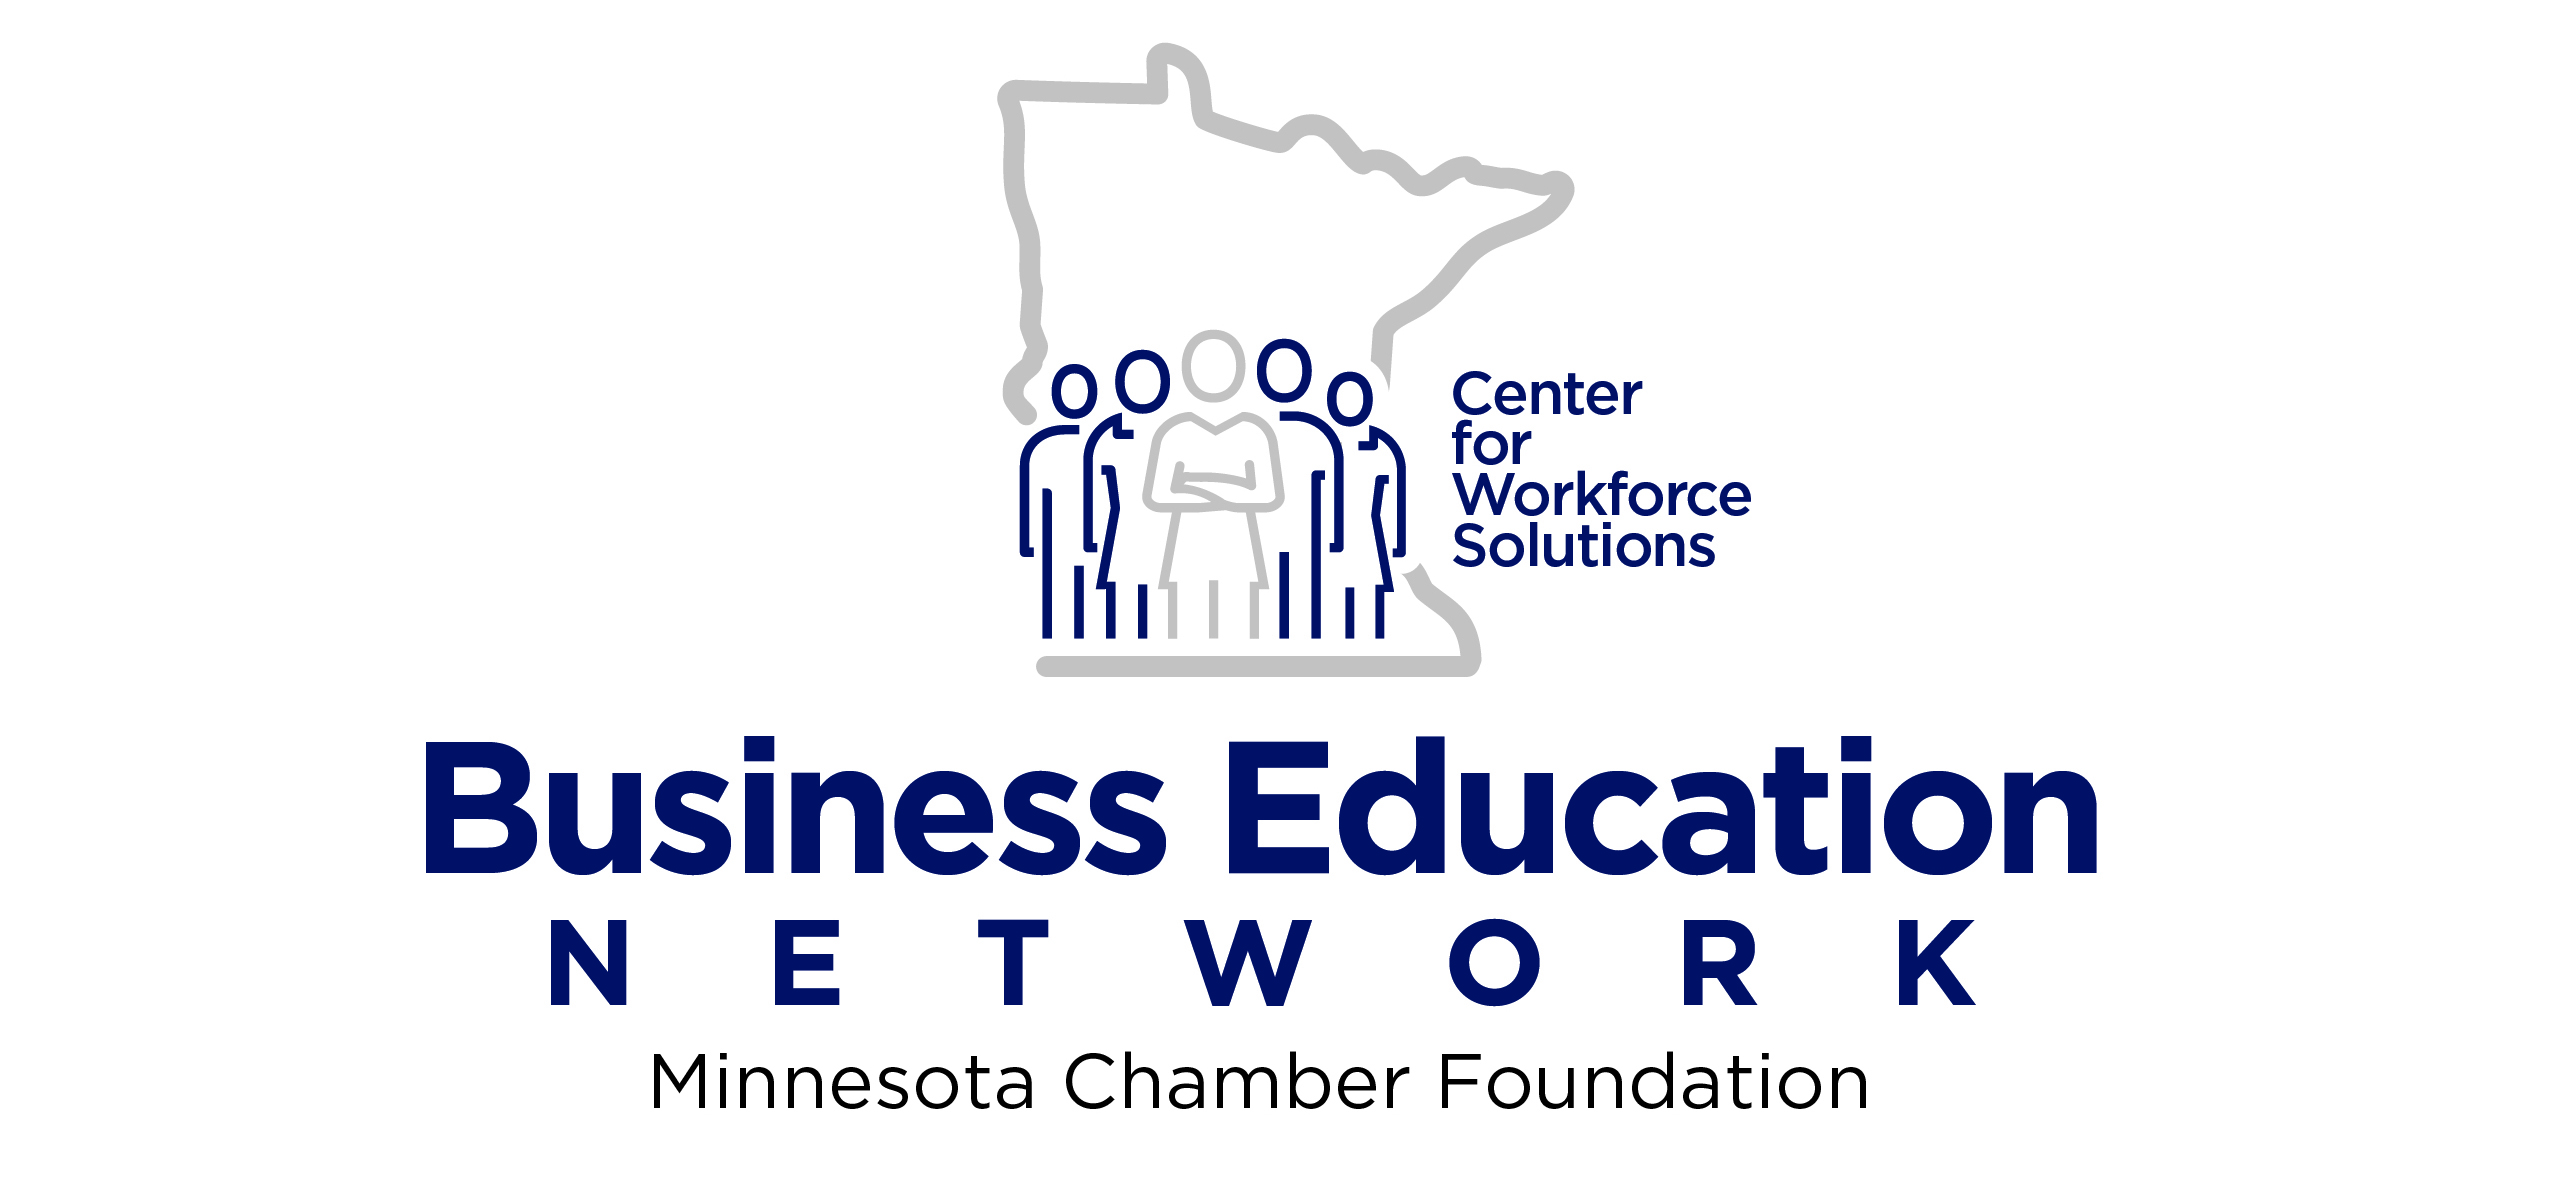 Business education network Minnesota Chamber foundation